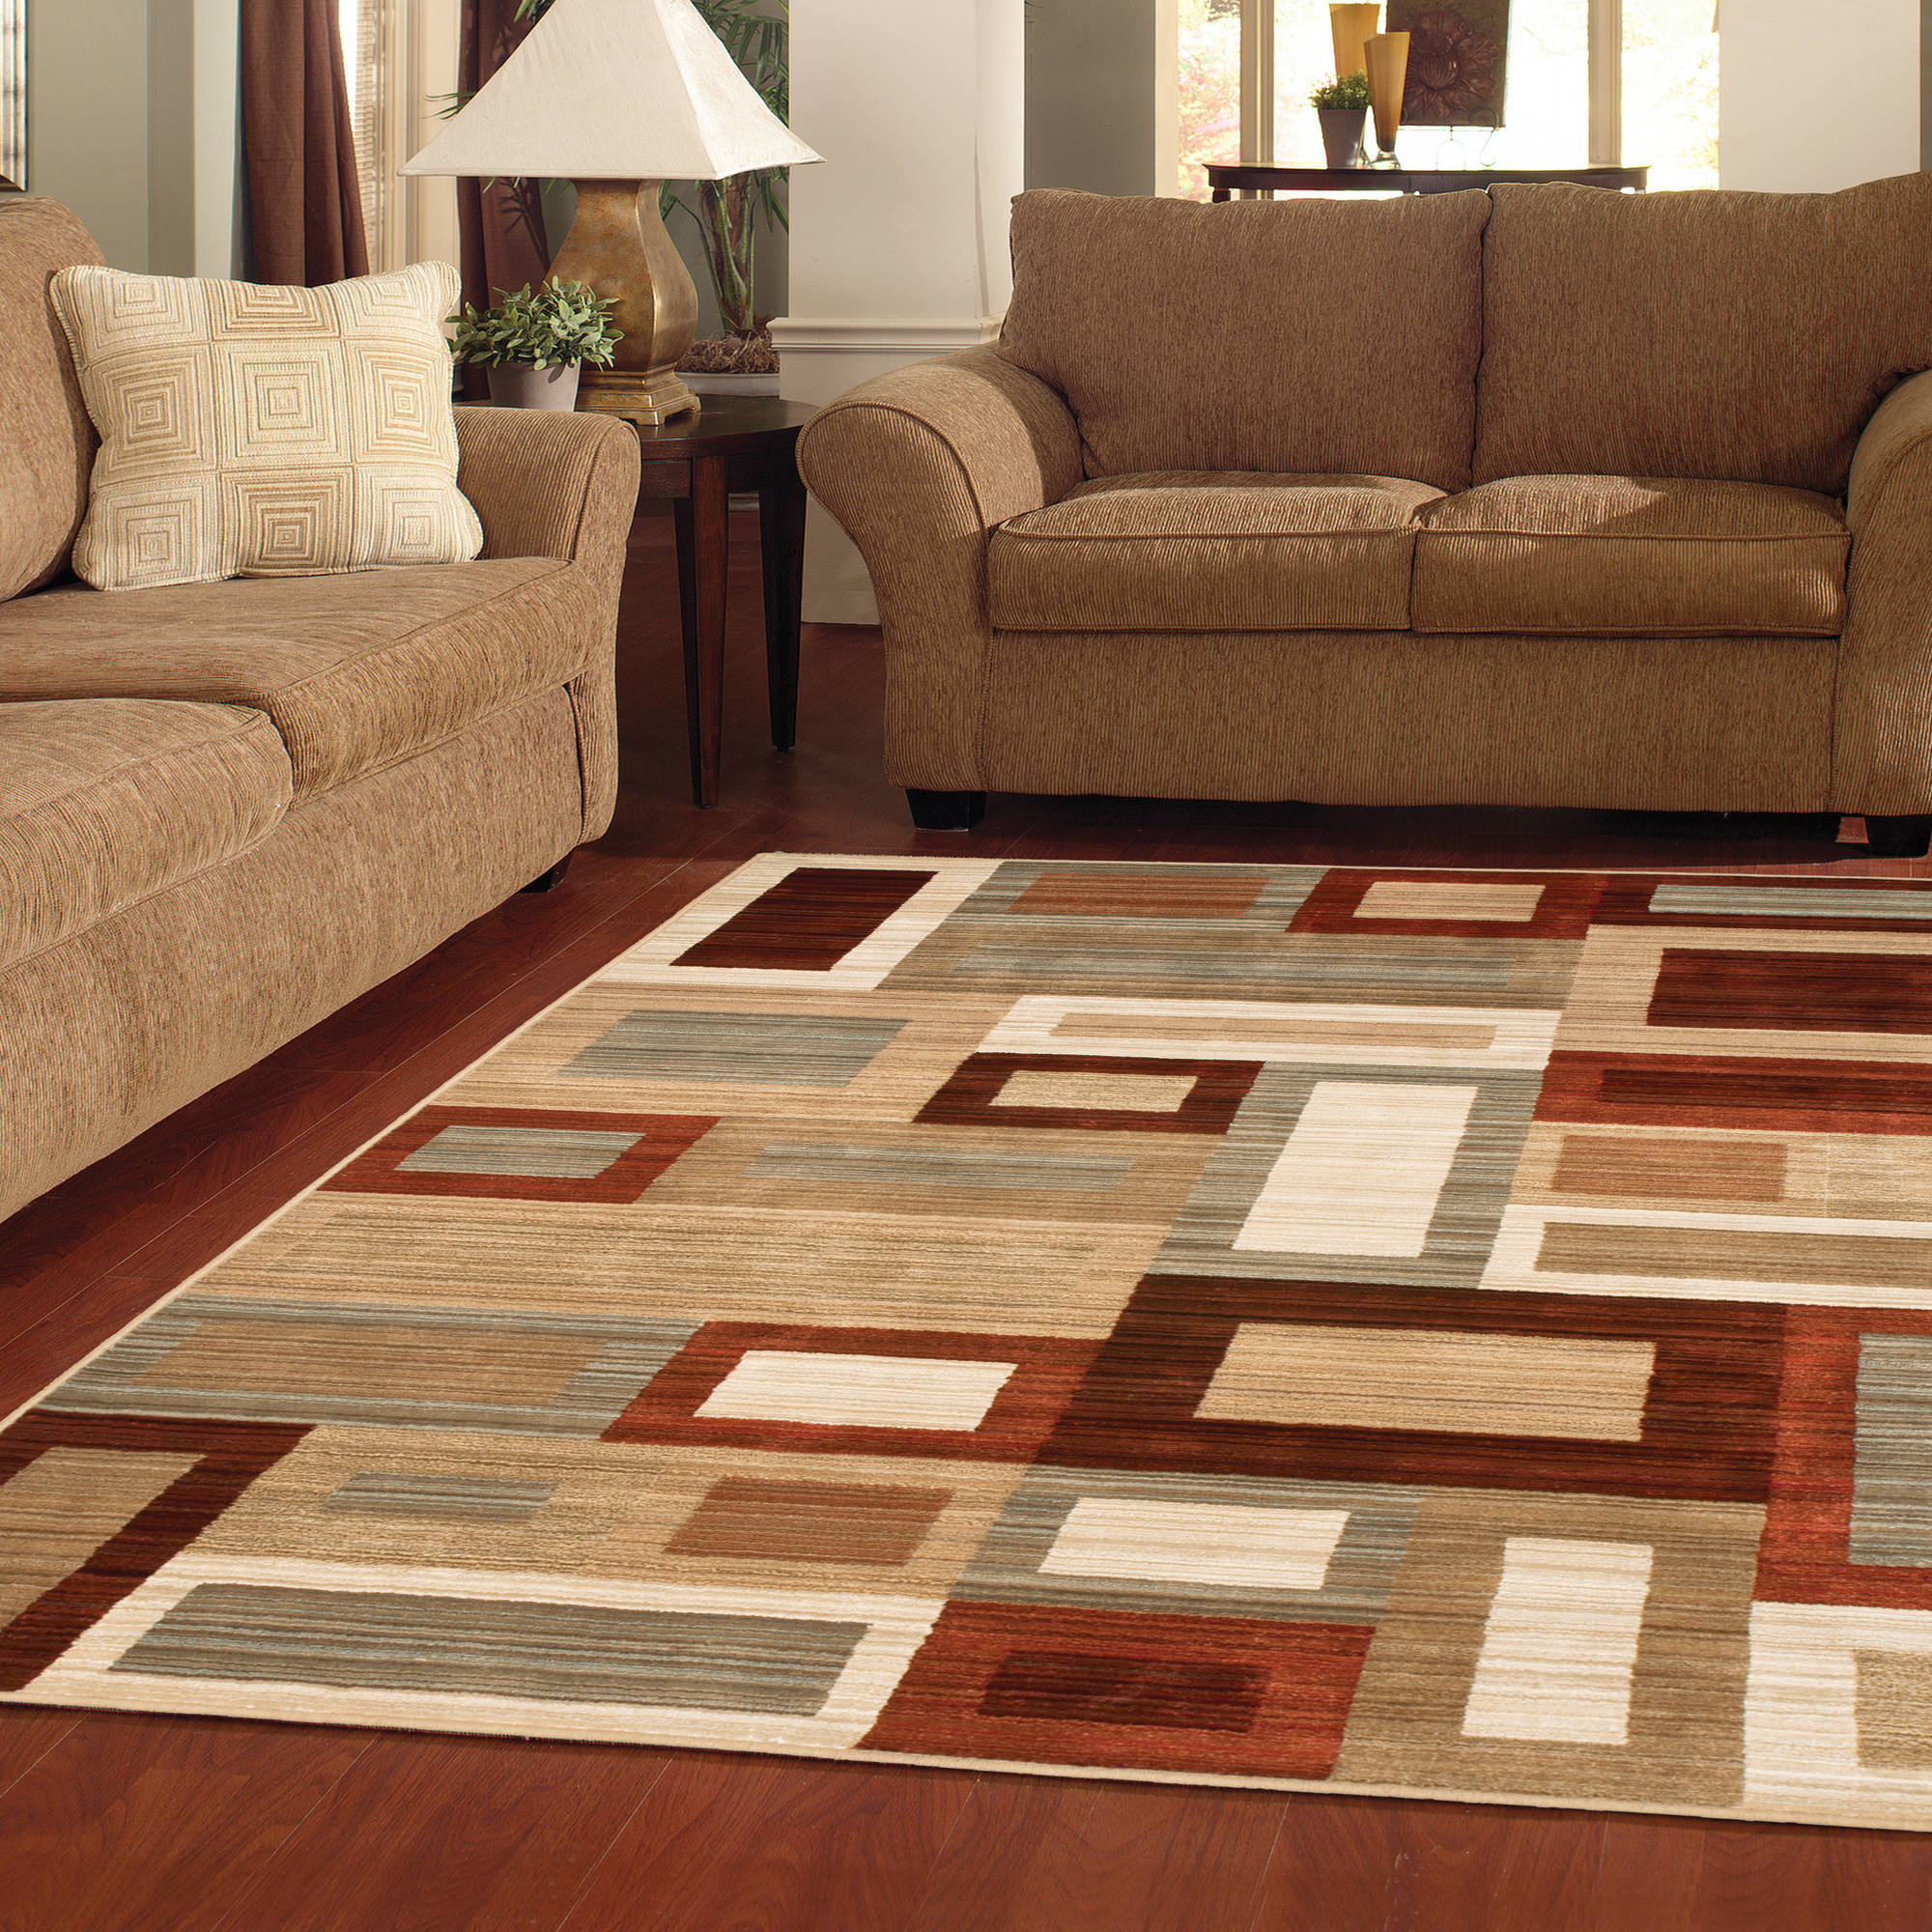 Better Homes Gardens Franklin Squares Area Rug Or Runner Walmart Com Rh  Walmart Com